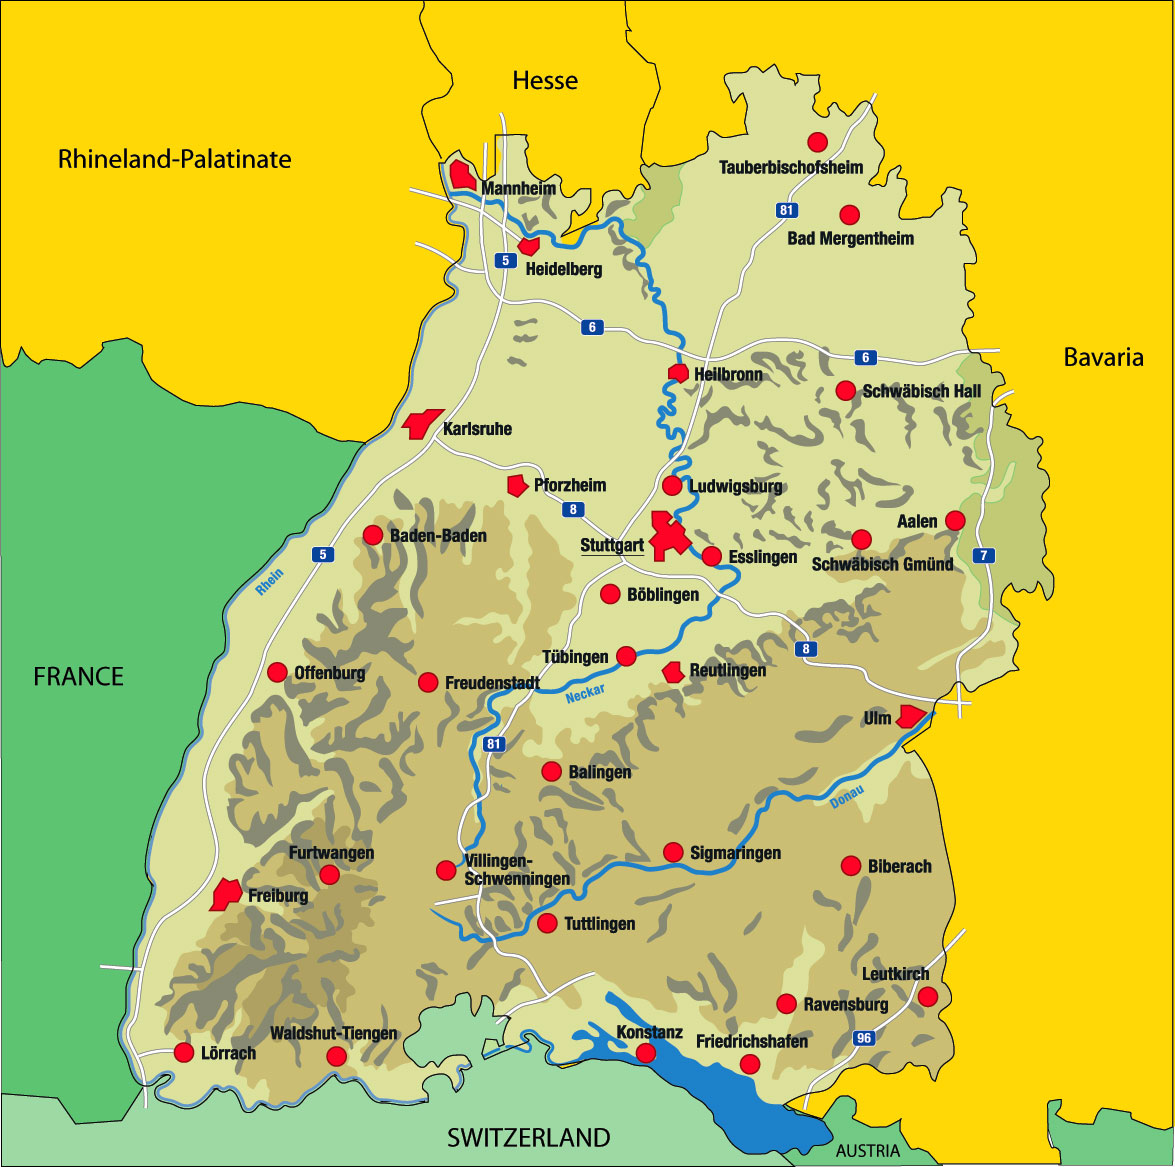 Contact Capital One >> Map of Baden-Württemberg - Nations Online Project